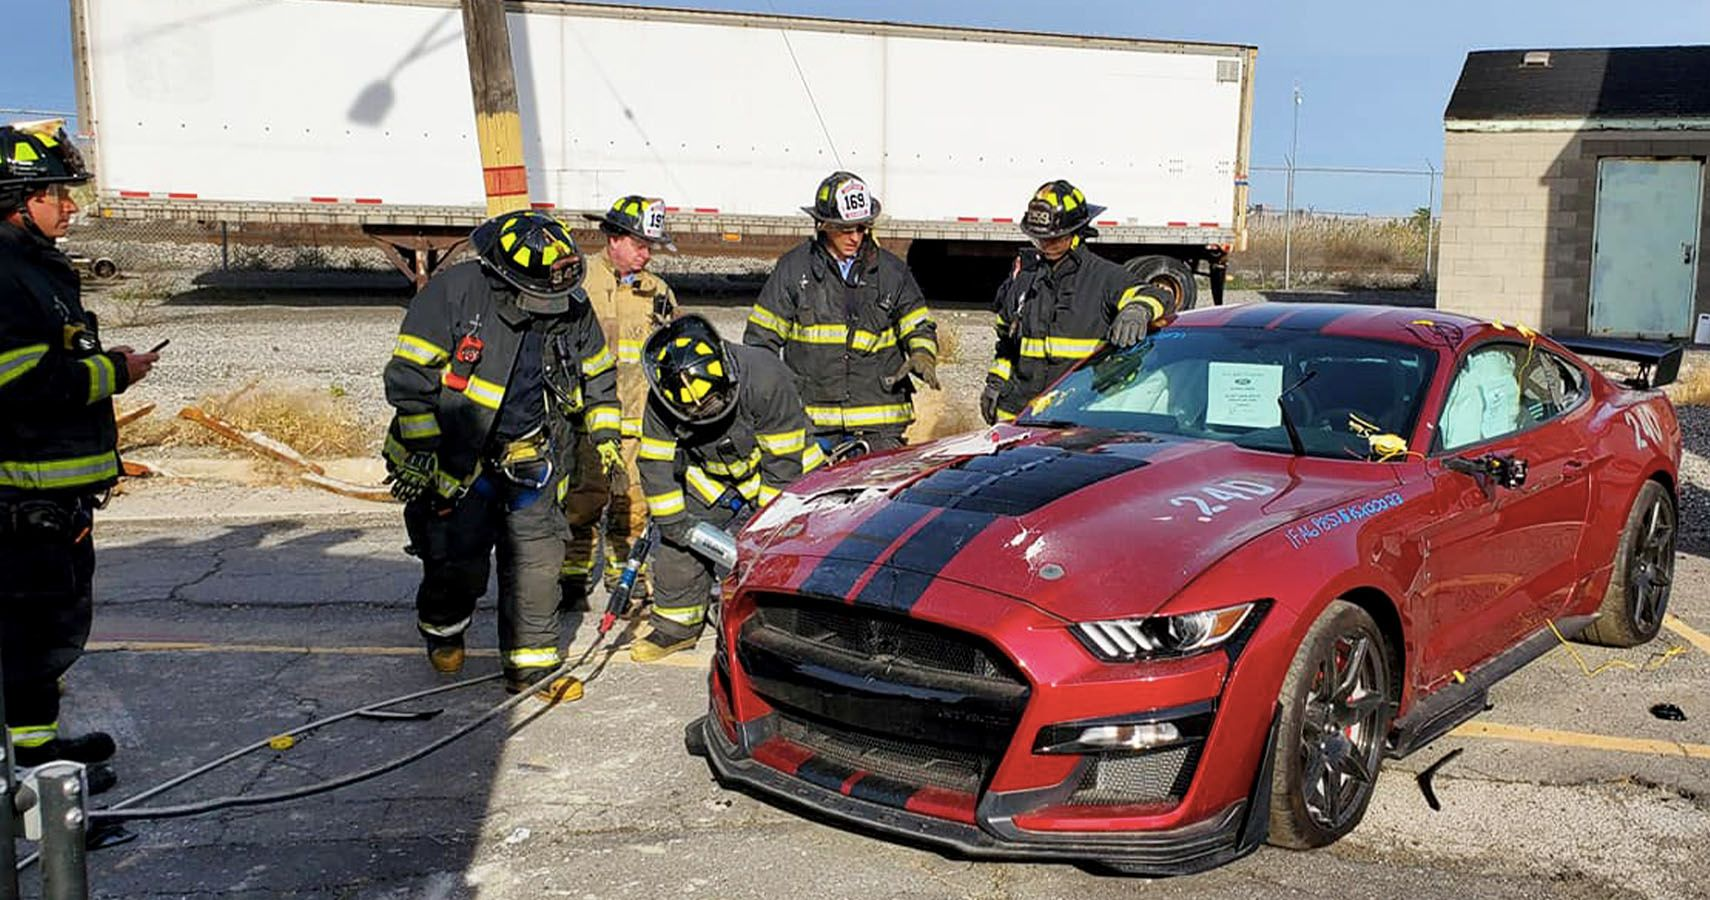 Firefighters Destroy A Mustang Shelby Cobra GT500 For Training Purposes